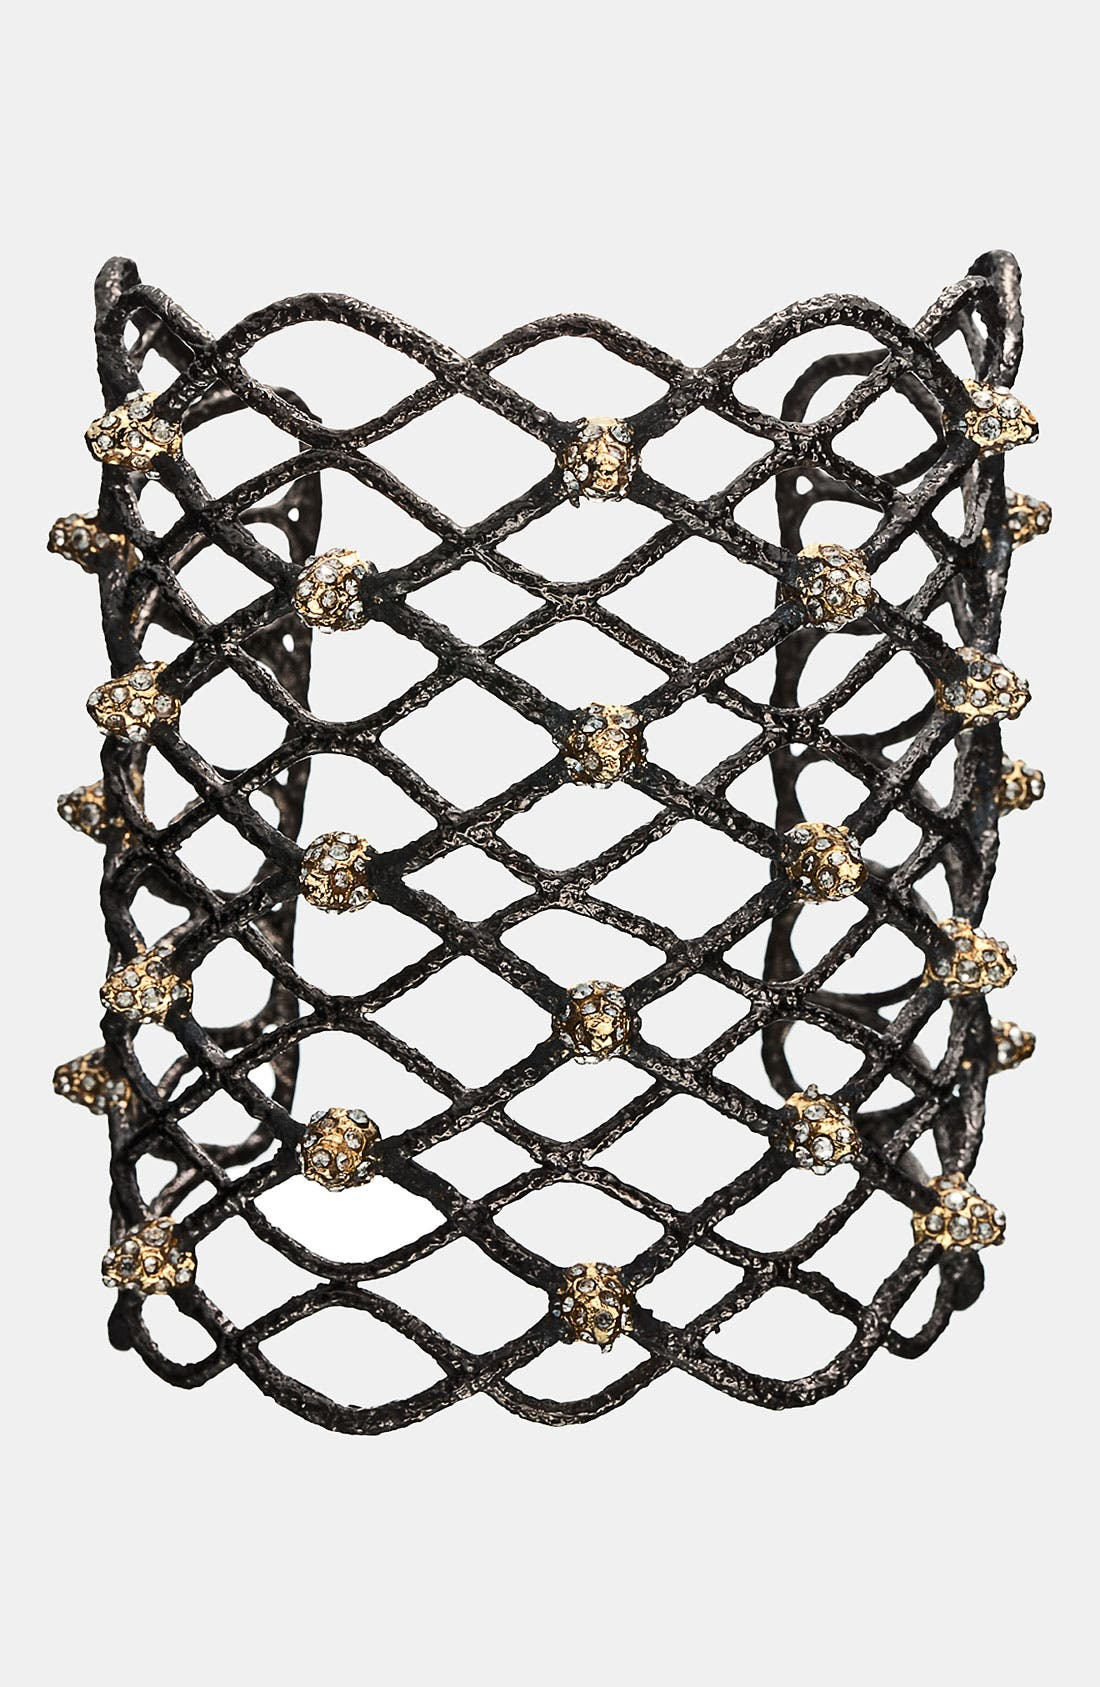 Alternate Image 1 Selected - Alexis Bittar 'Elements - Siyabona' Wide Spiked Woven Cuff